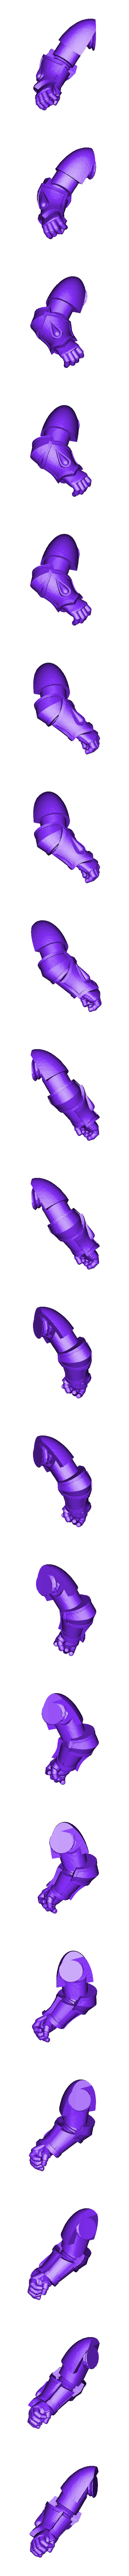 righthand_2.stl Download STL file Sanguine Angels  Arms and Weapons • 3D printer template, vb2341